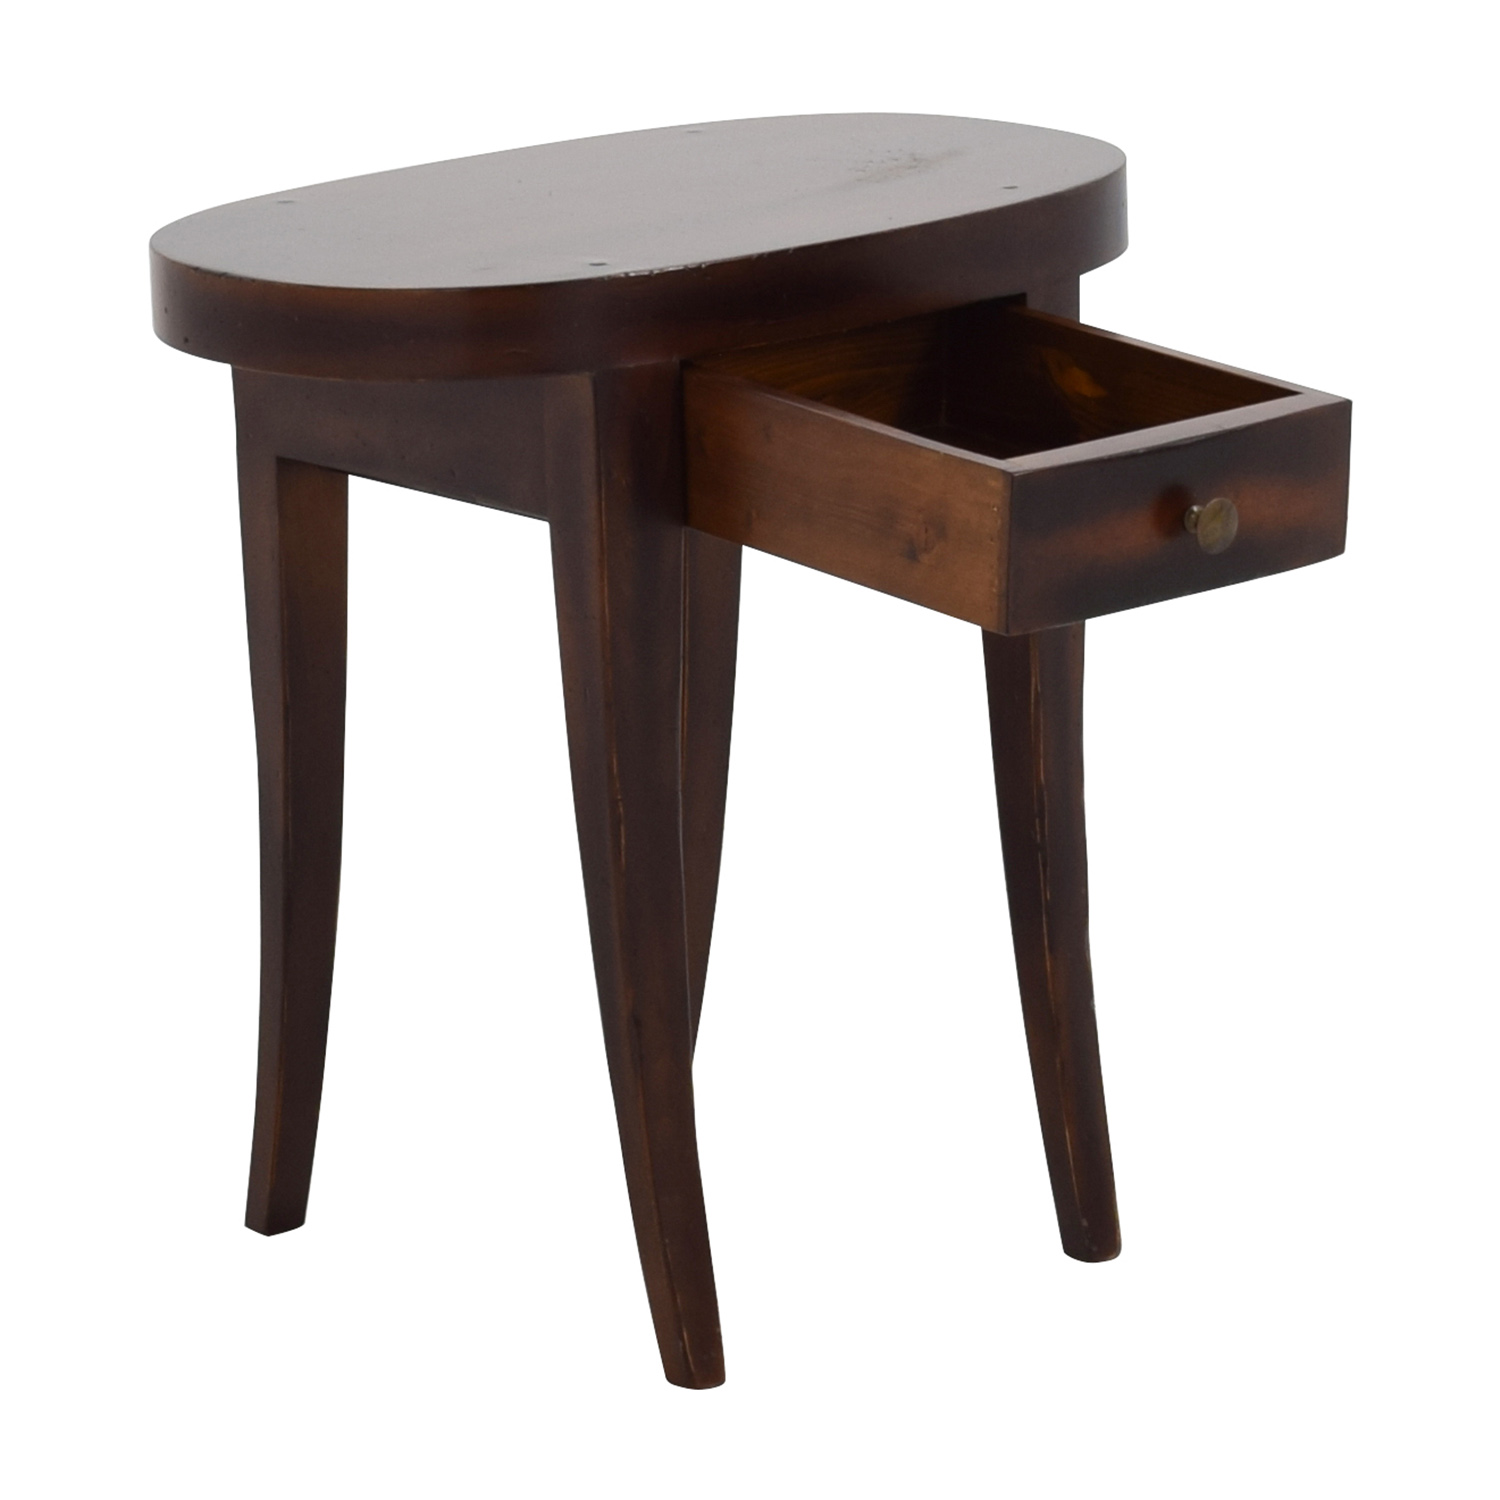 ... Oval Dark Wood Side Table With One Drawer / Tables ...